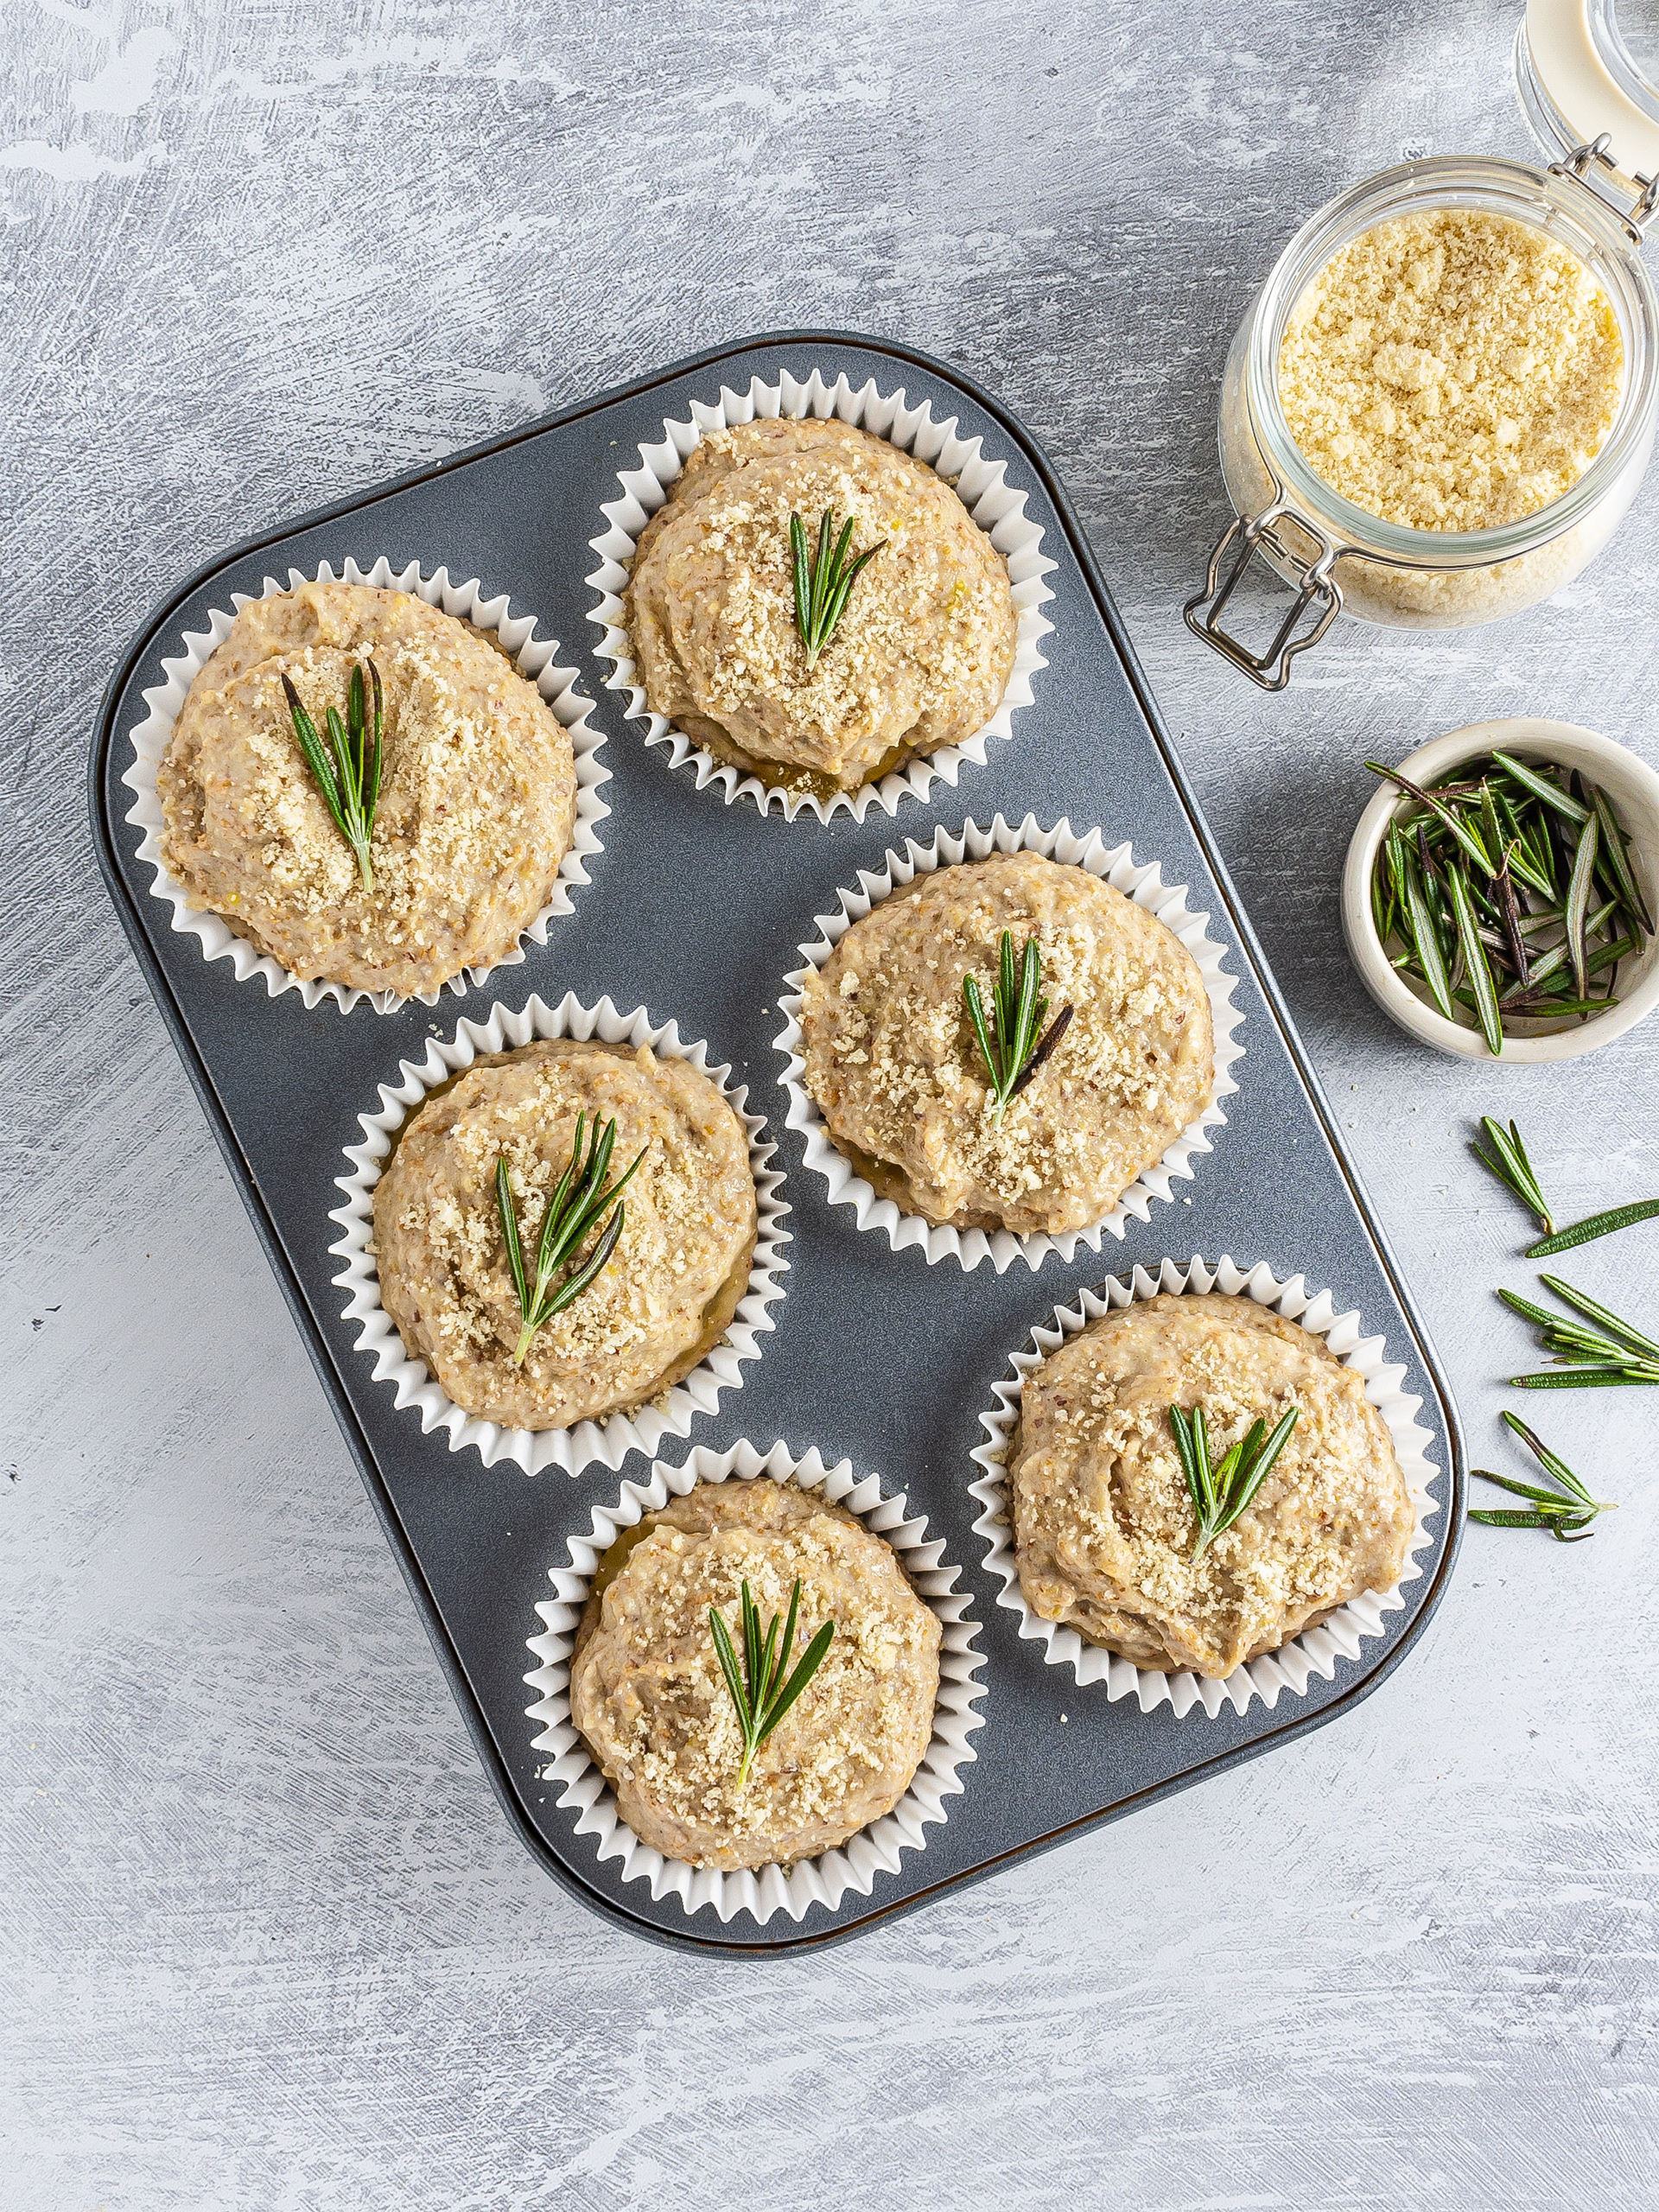 Muffins garnished with rosemary